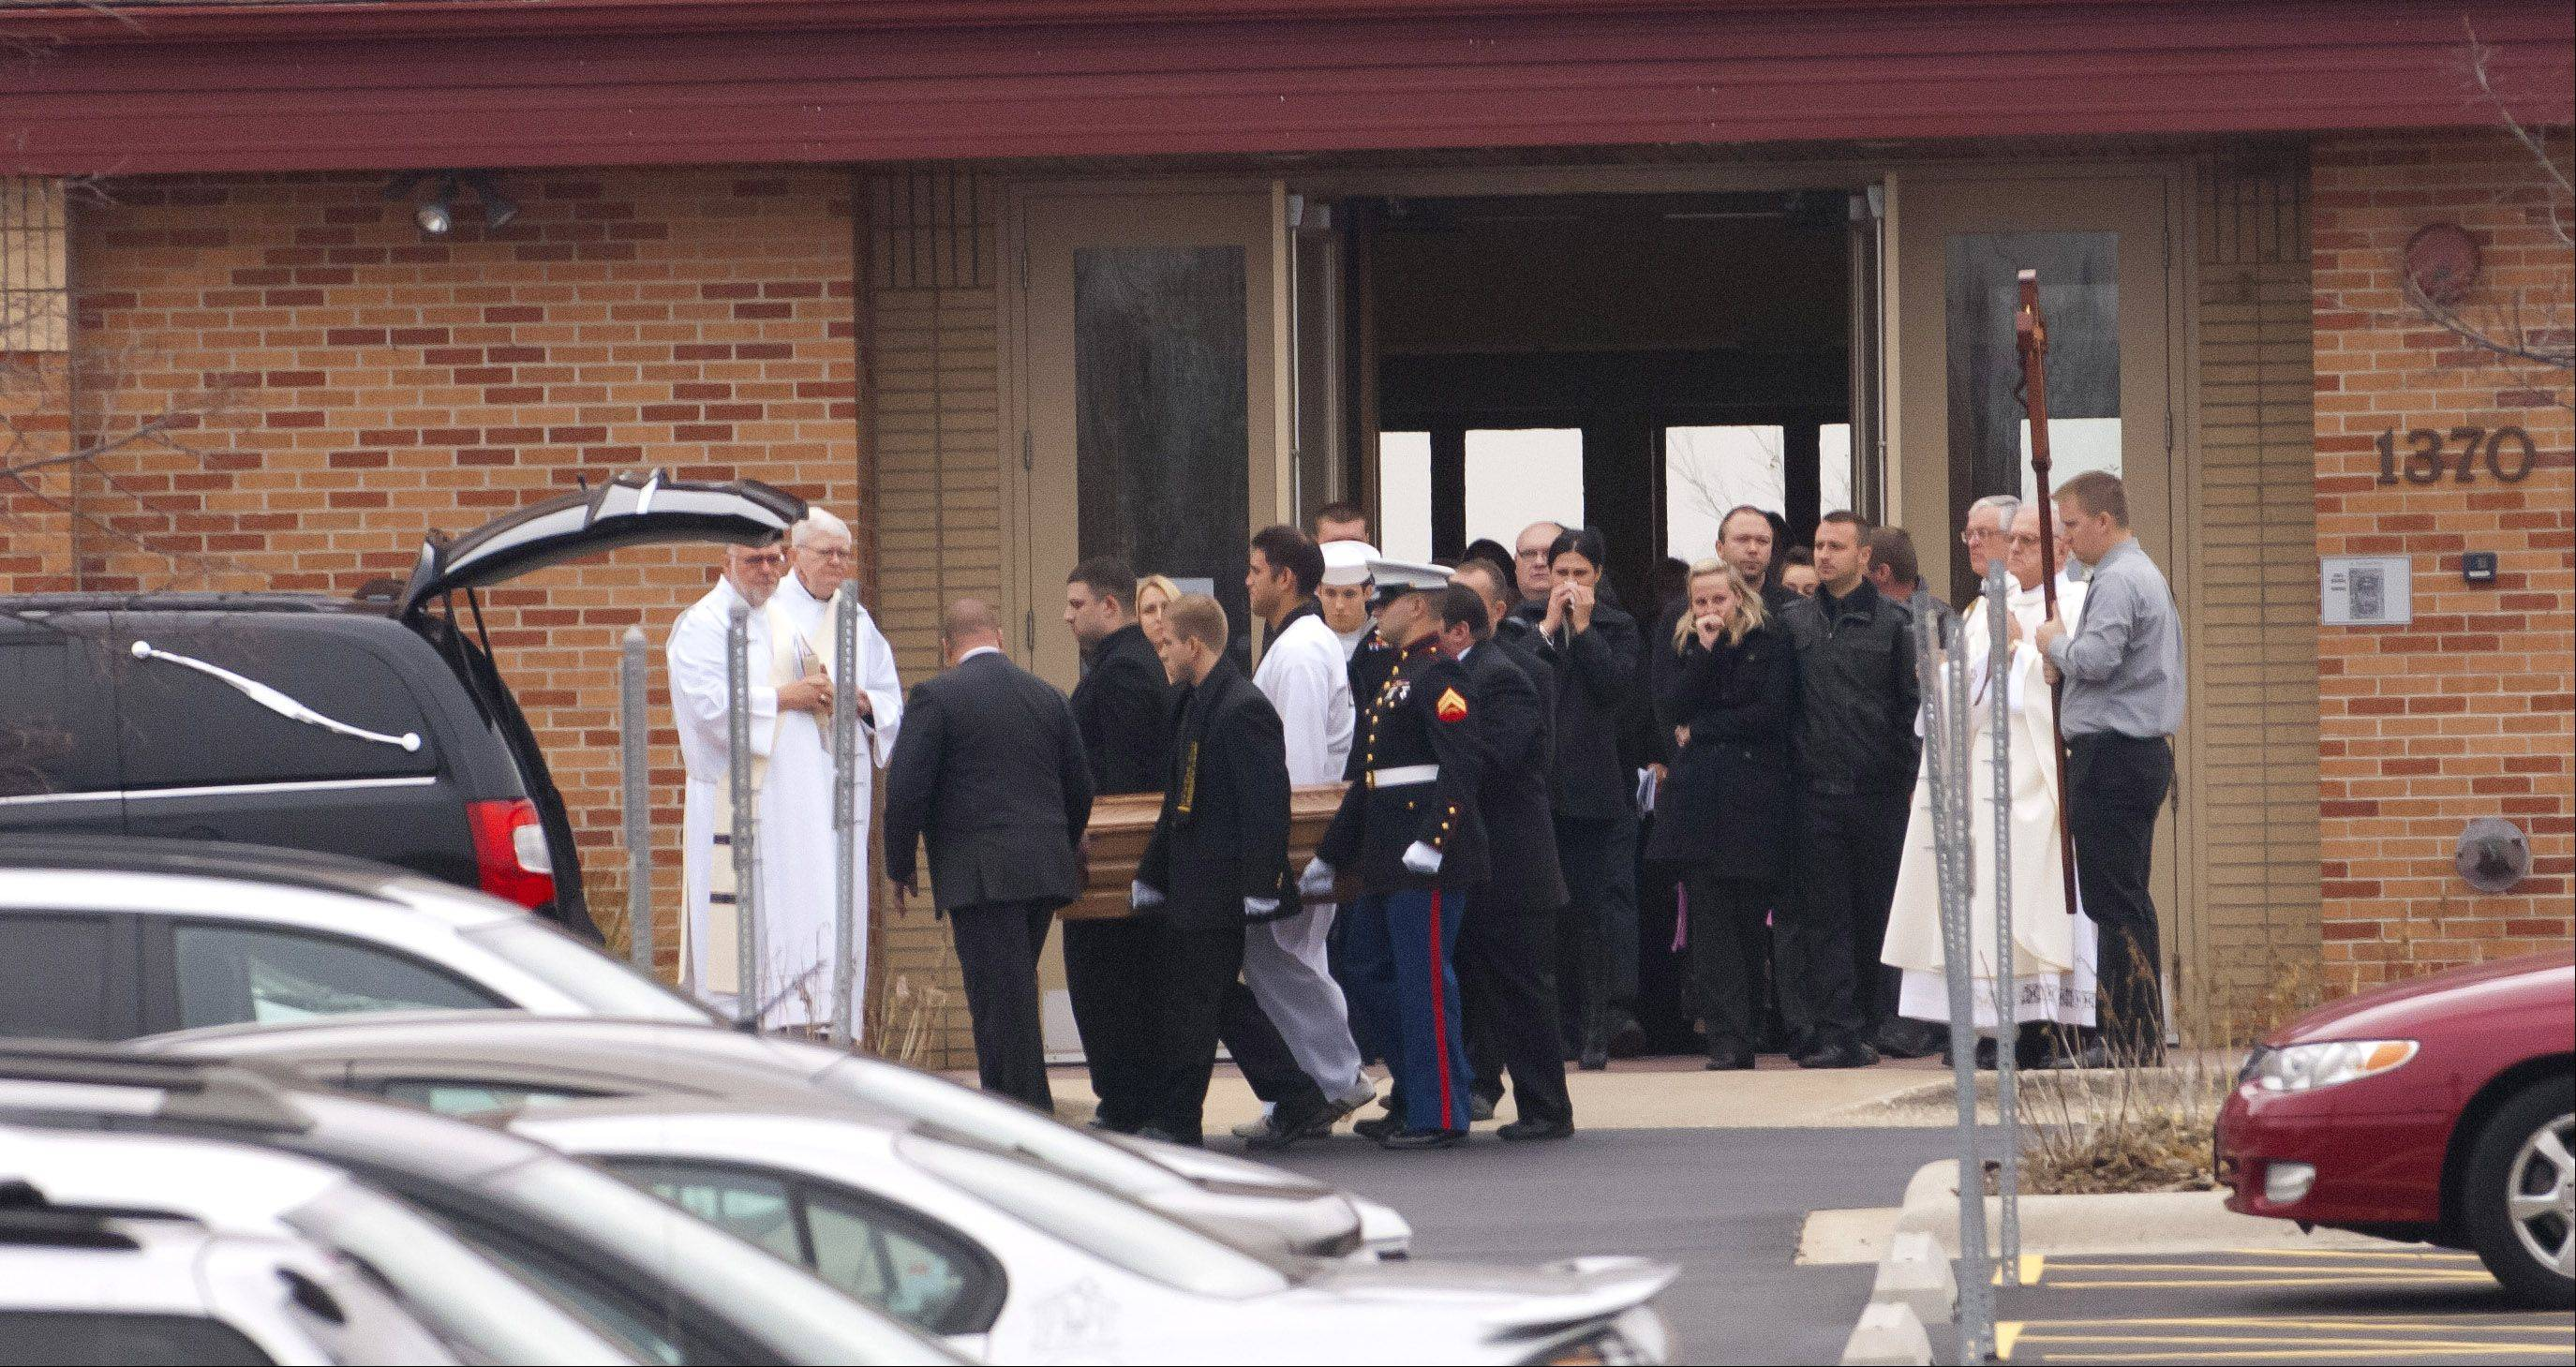 Justin Plackowski laid to rest in Naperville